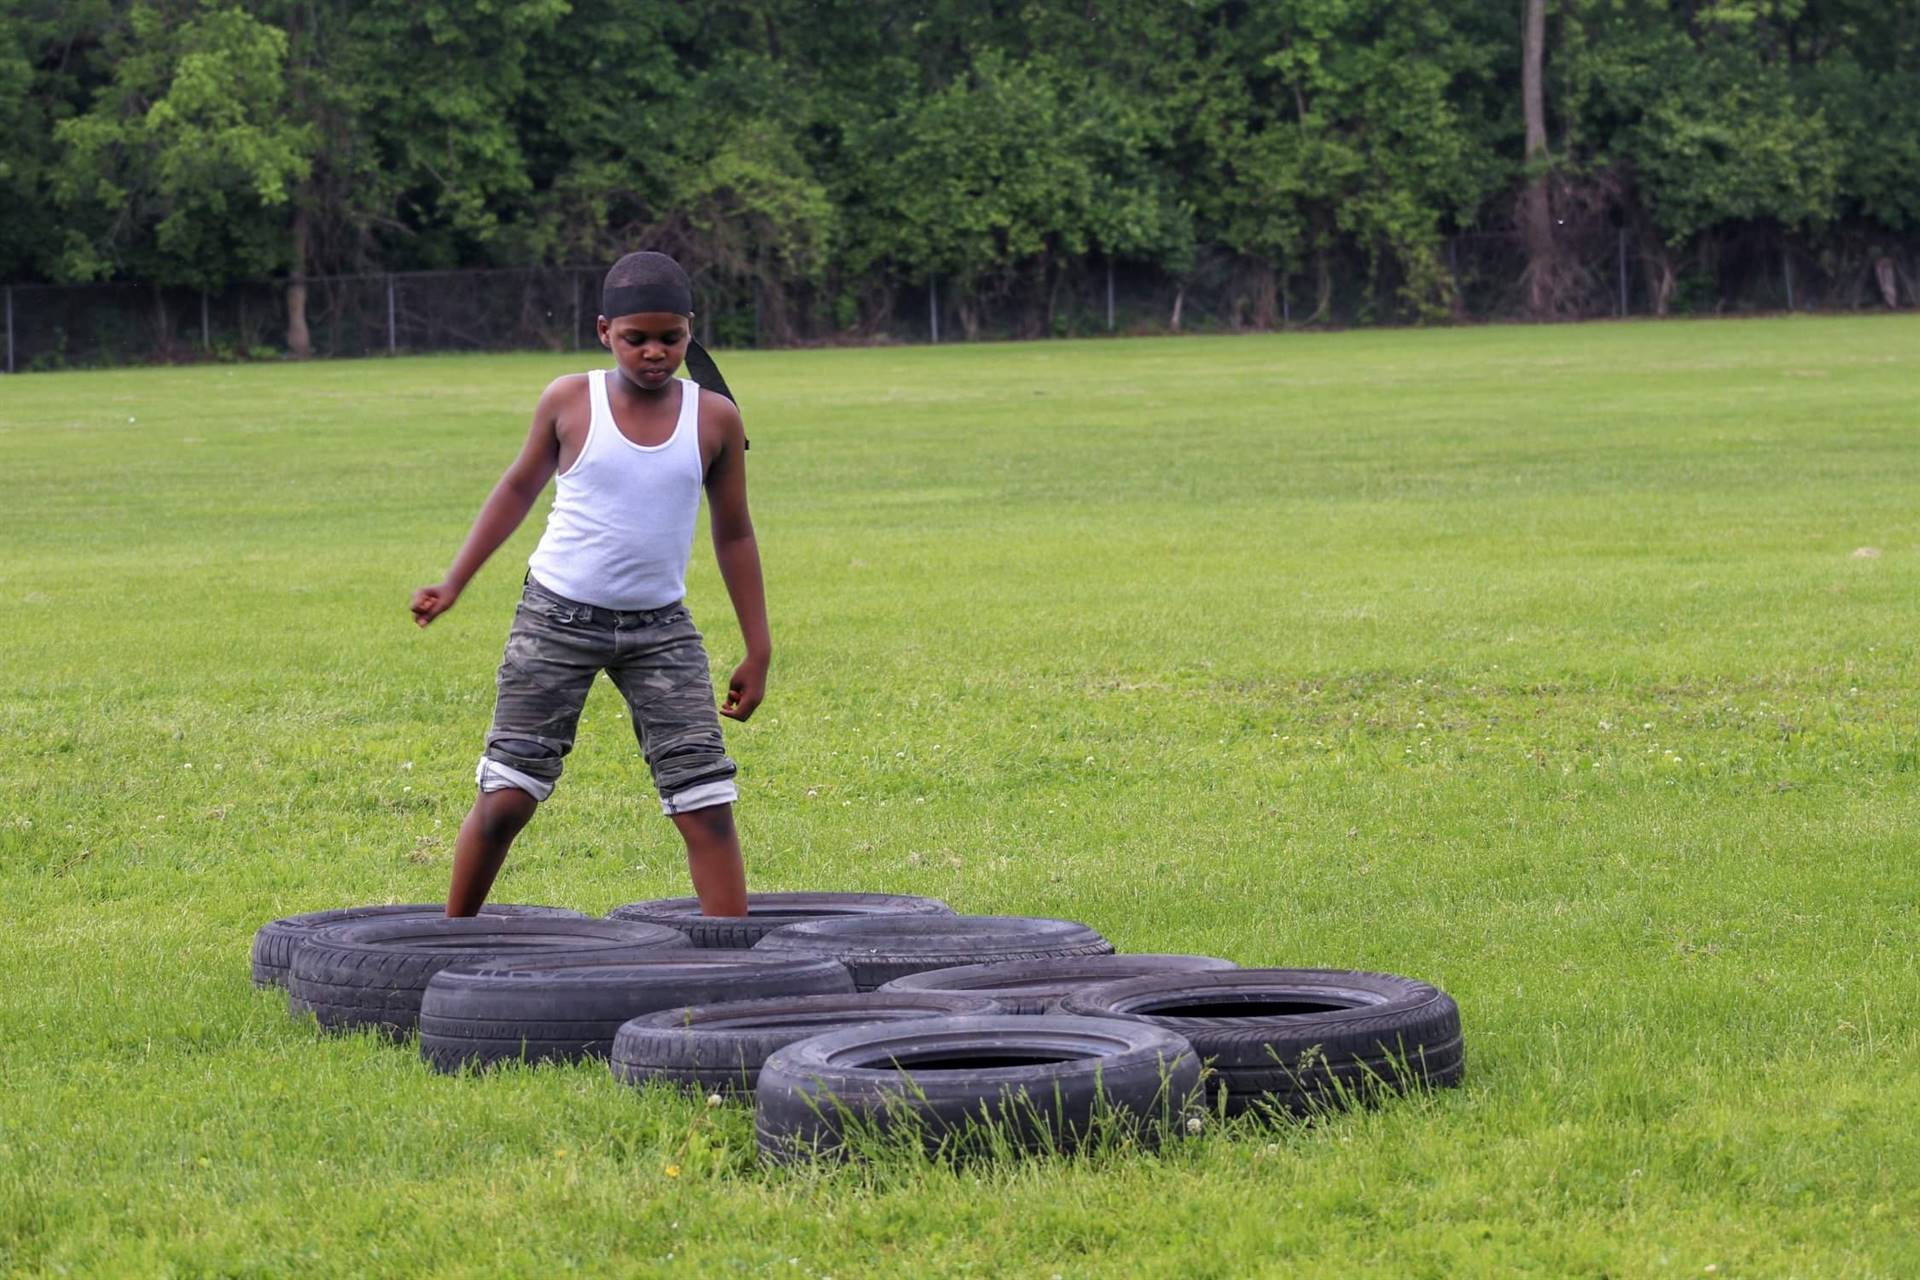 Students participating in the Ninja Warrior Obstacle course!